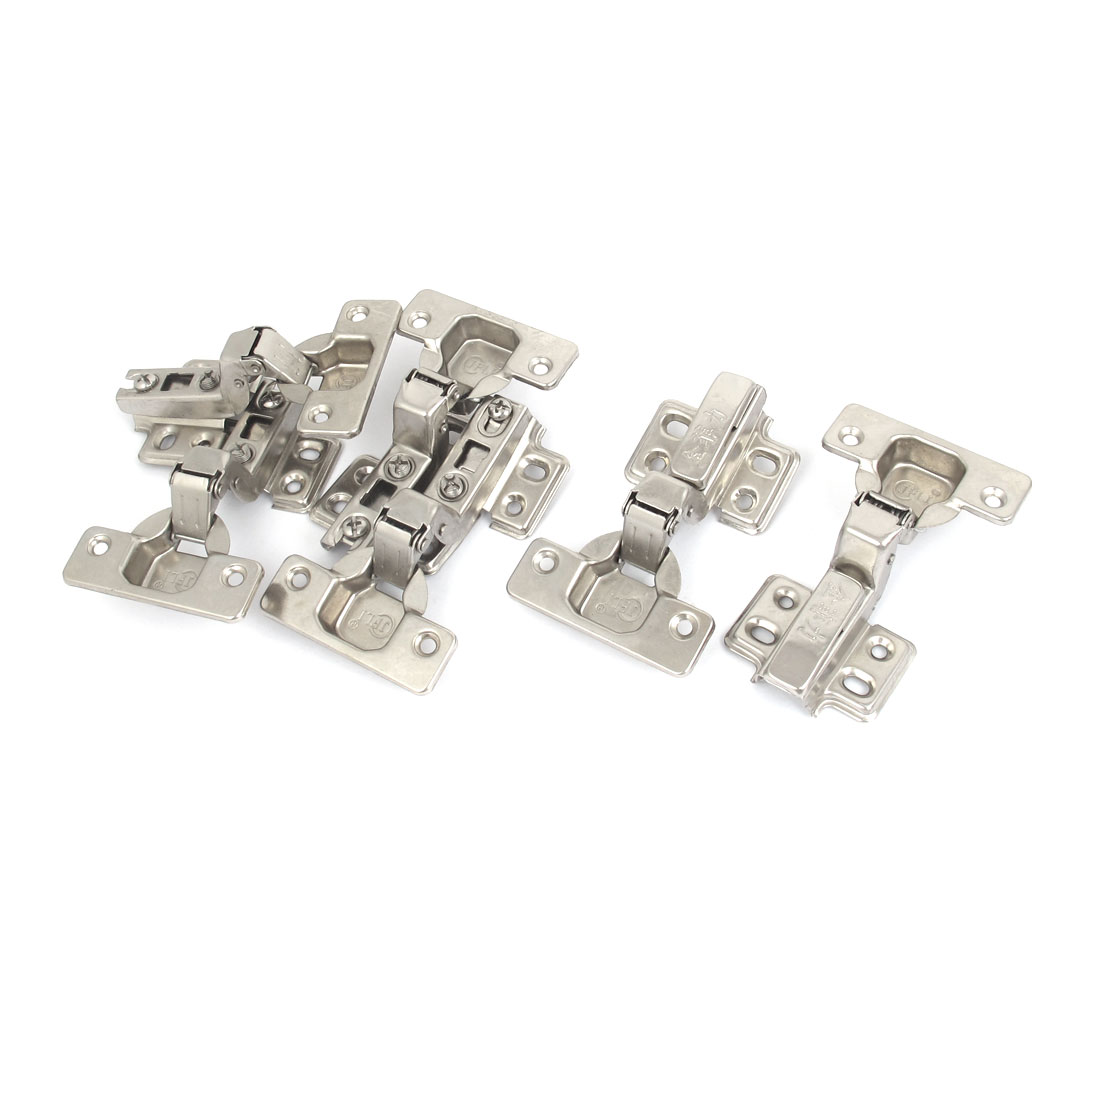 Face Frame Concealed Self Closing Metal Cabinet Hinges Silver Tone 6pcs